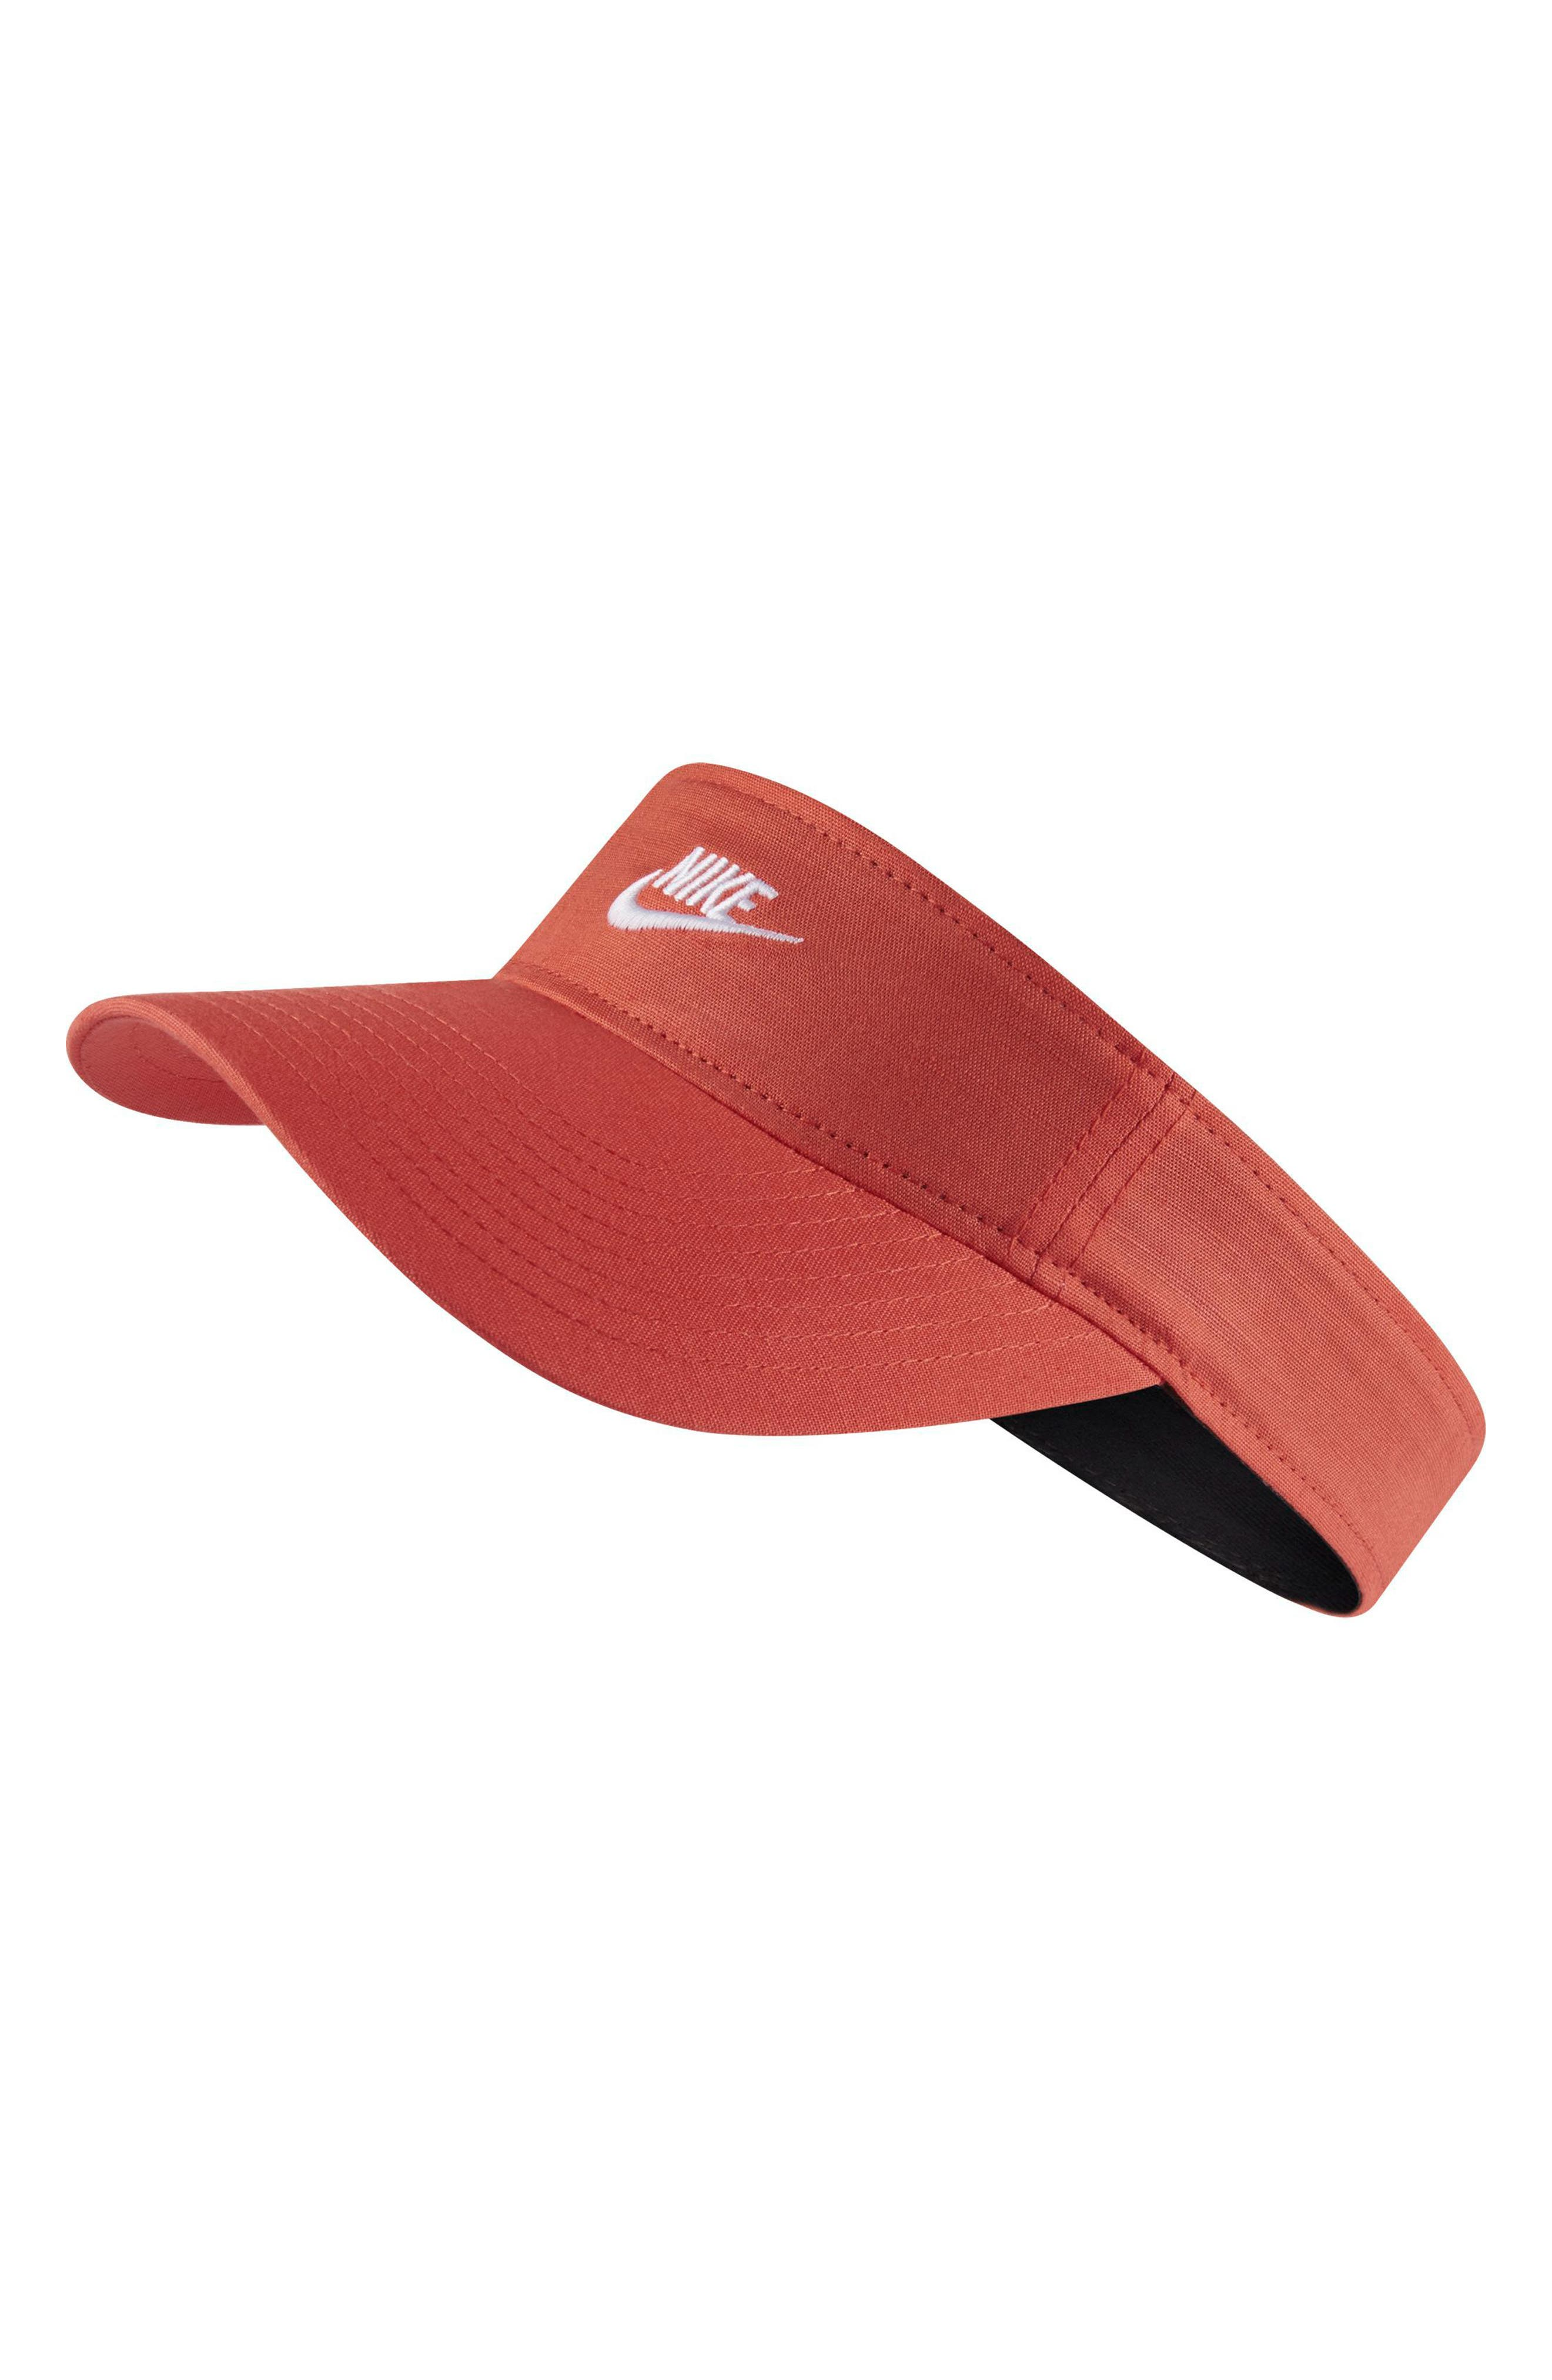 Sportswear Women's Dri-FIT Visor,                             Main thumbnail 1, color,                             600